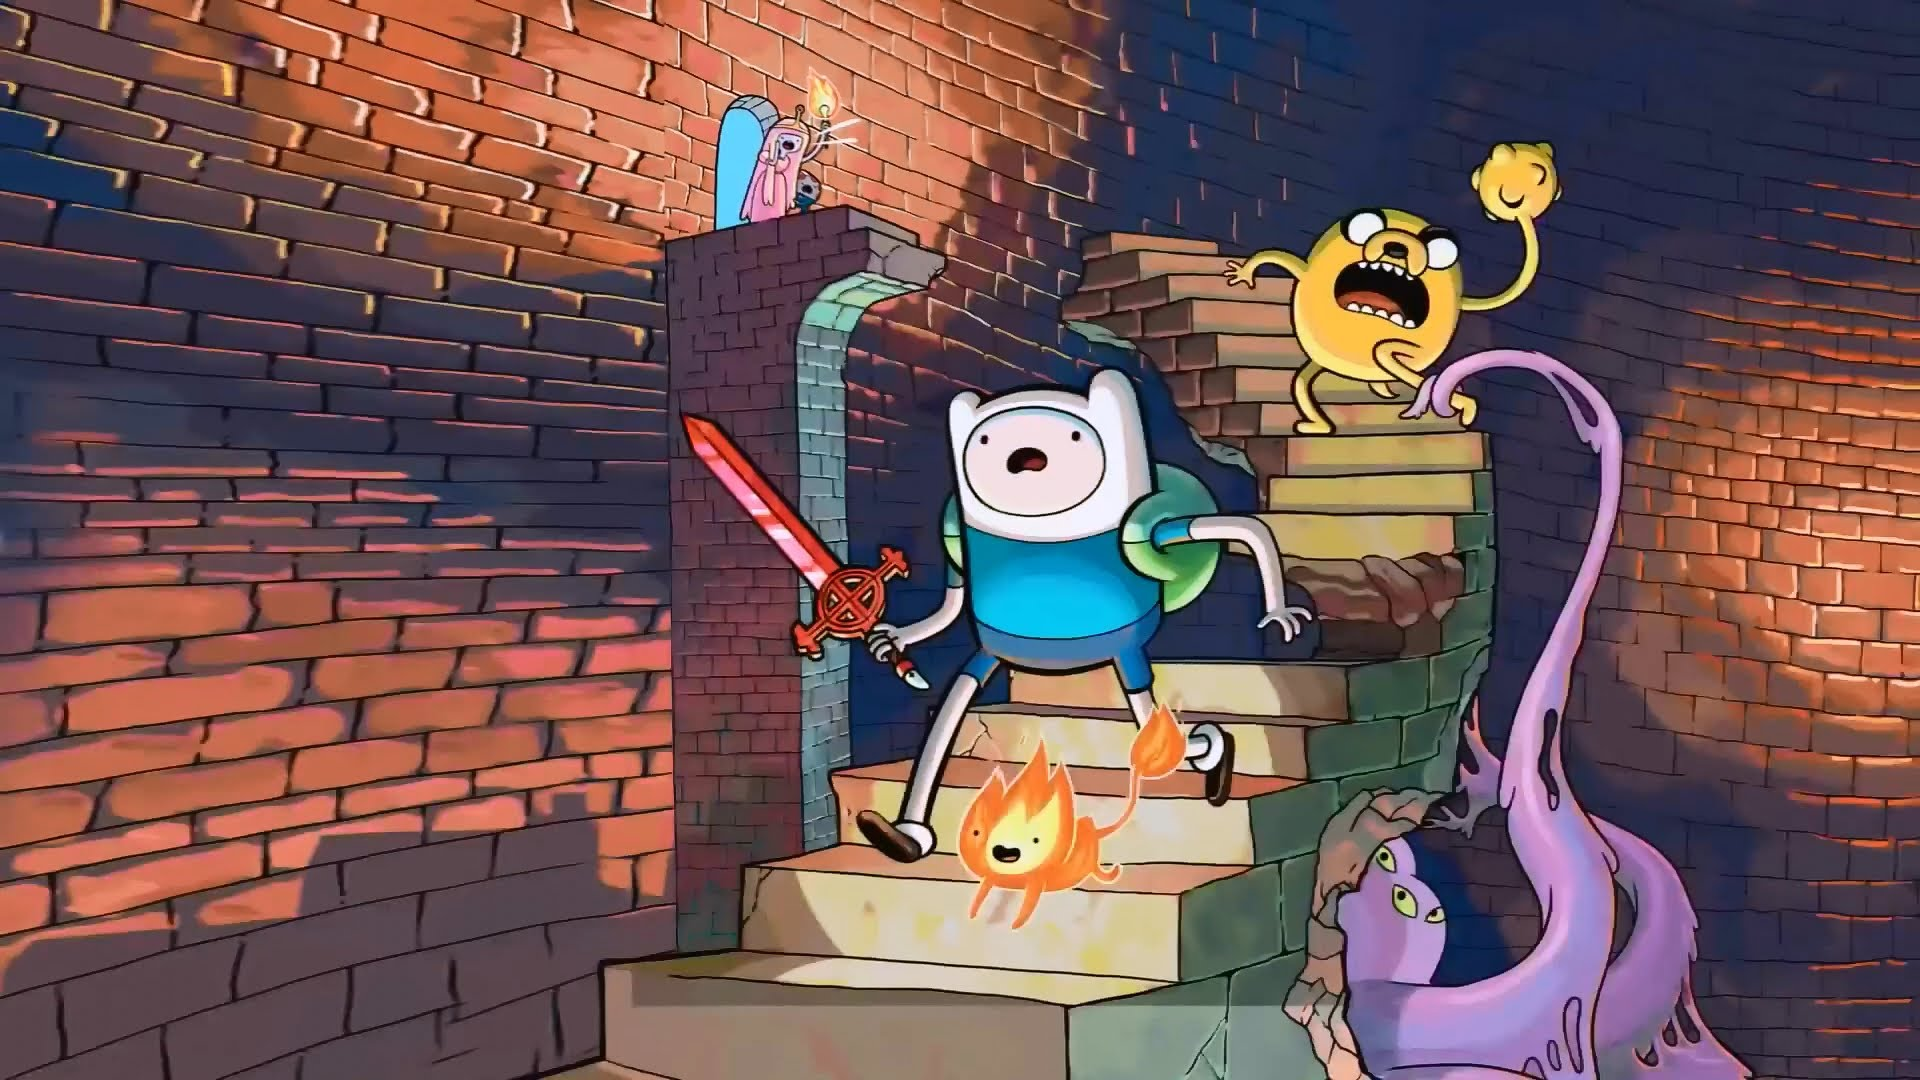 Adventure Time: Explore The Dungeon Because I Don't Know! Backgrounds, Compatible - PC, Mobile, Gadgets| 1920x1080 px